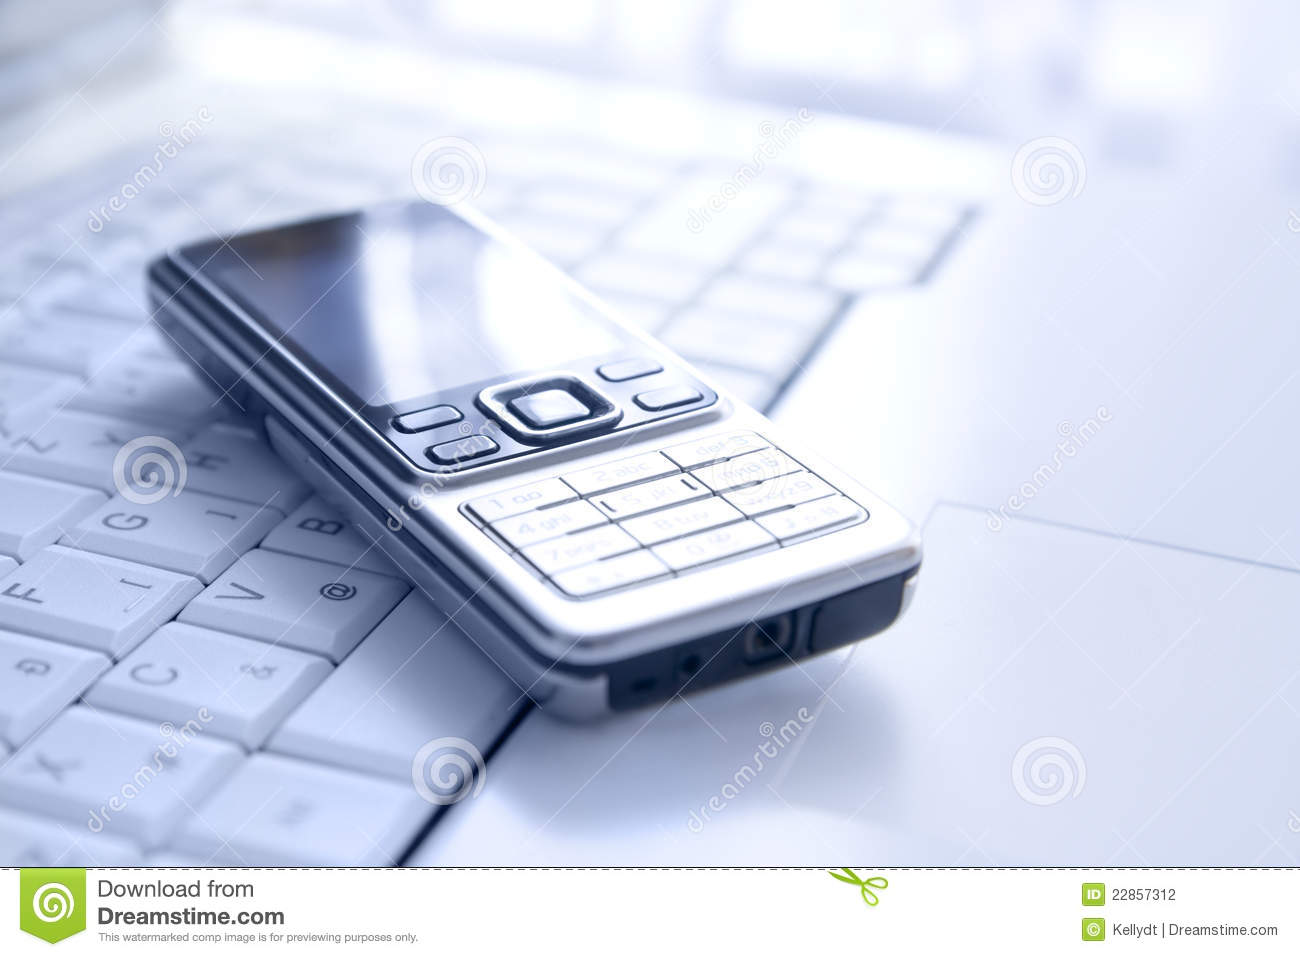 Business technology concept mobile phone over keyboard of a luxury